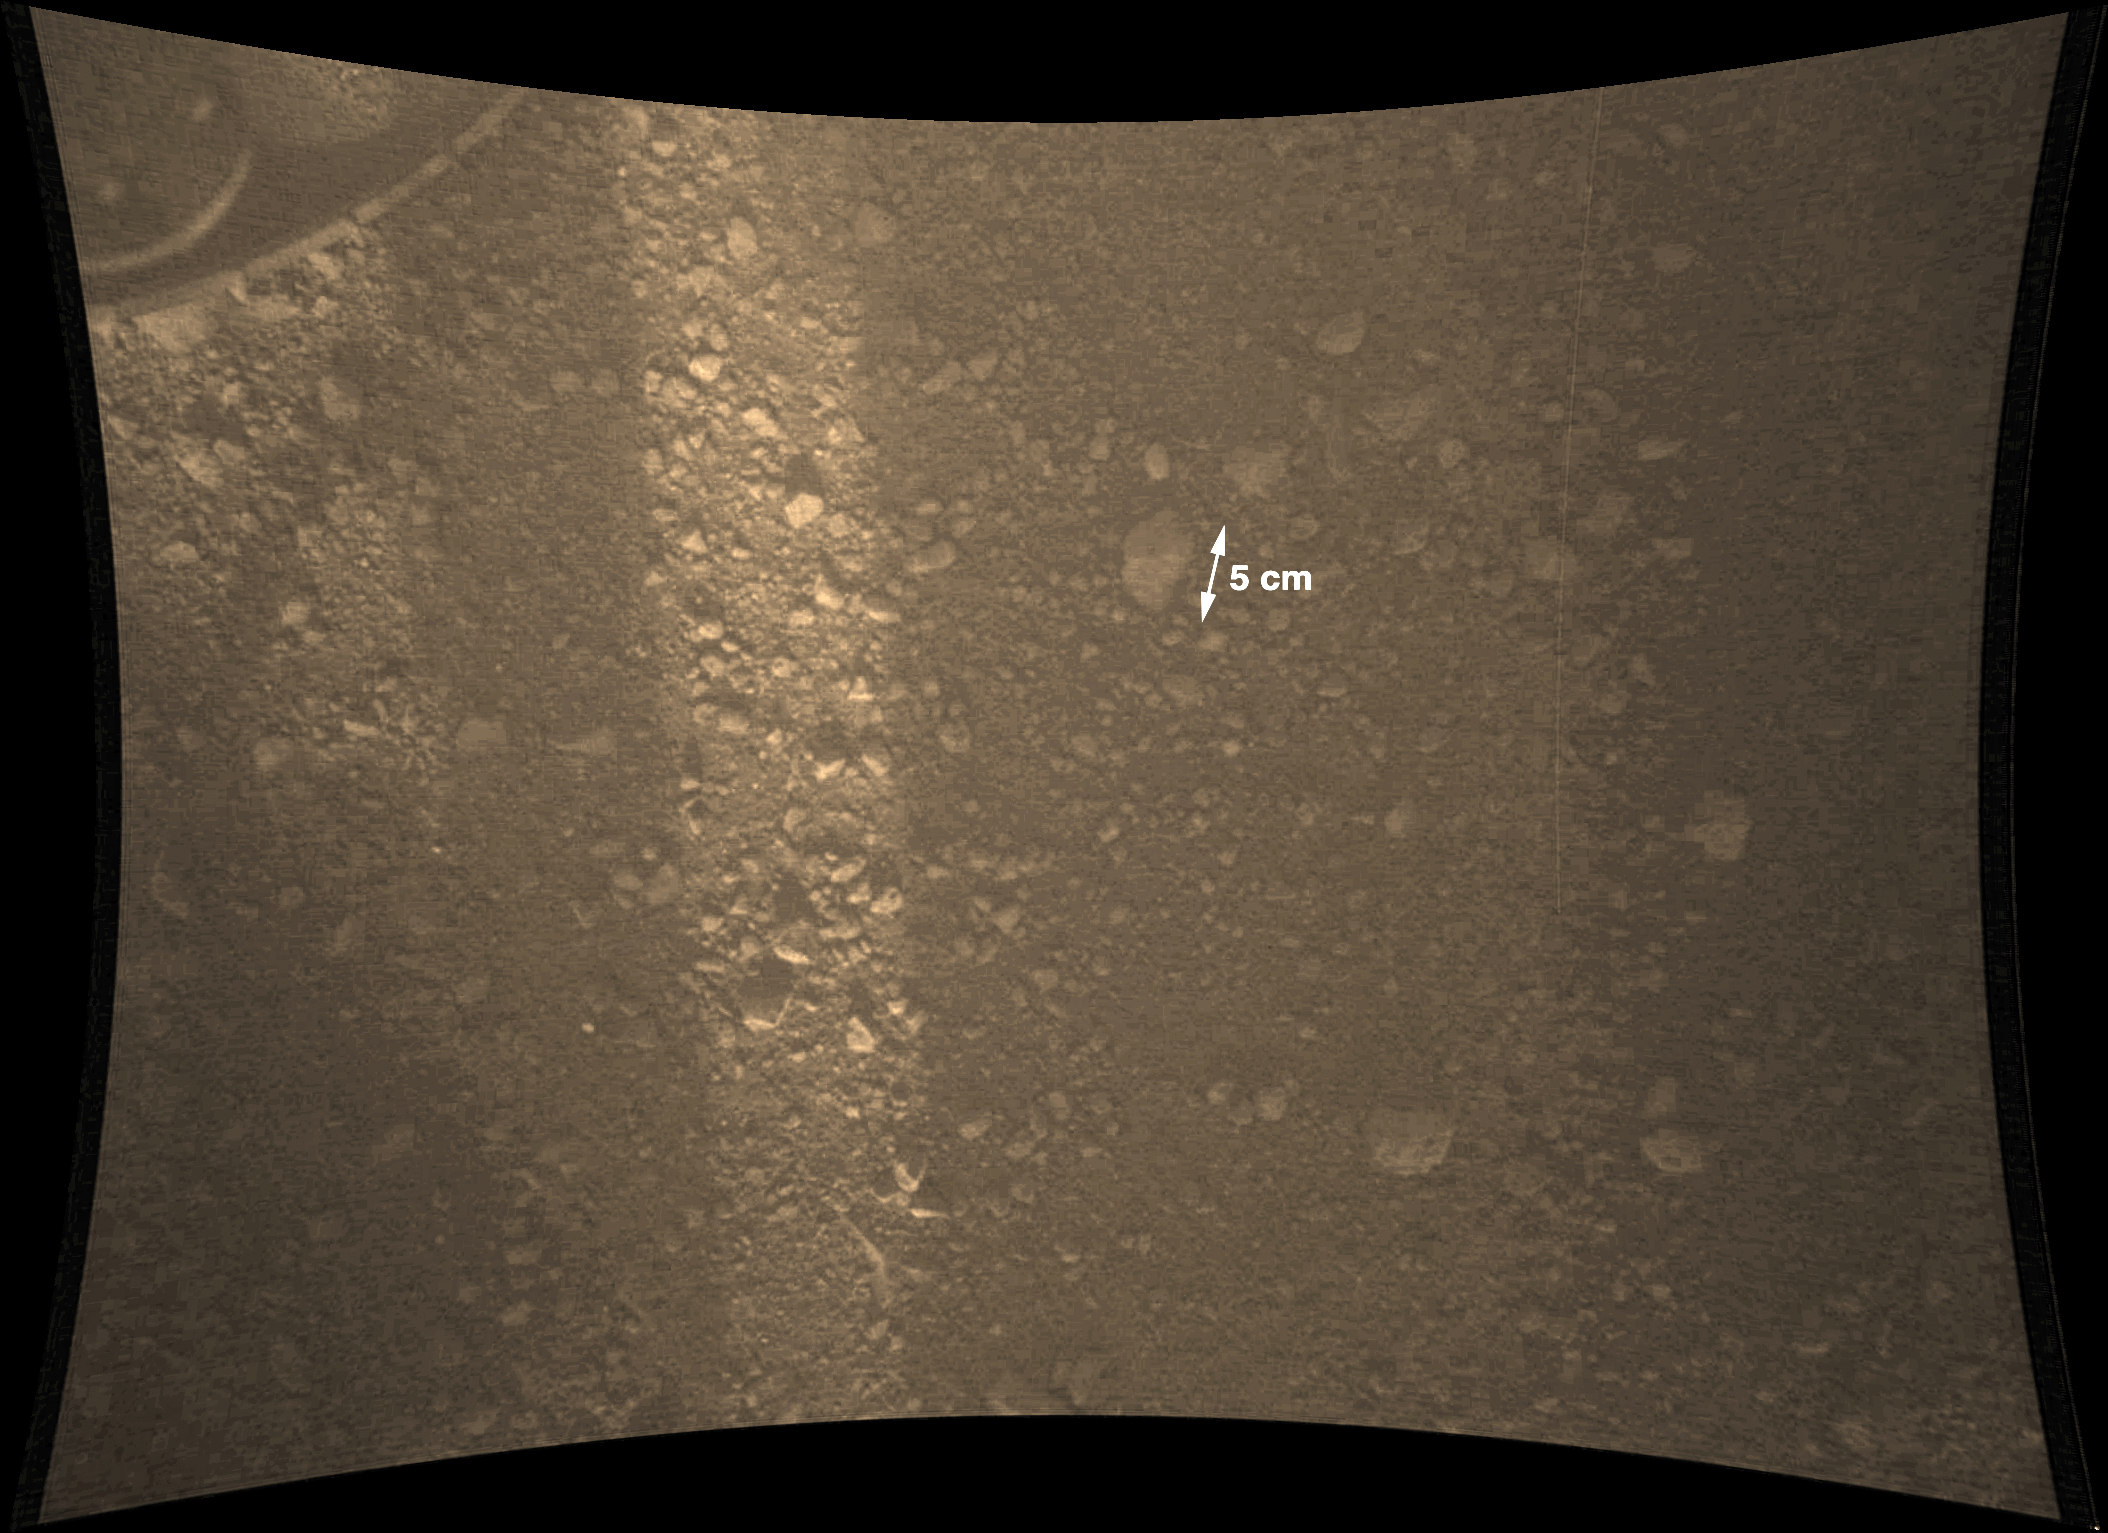 1st person veiw mars rover footage - photo #48